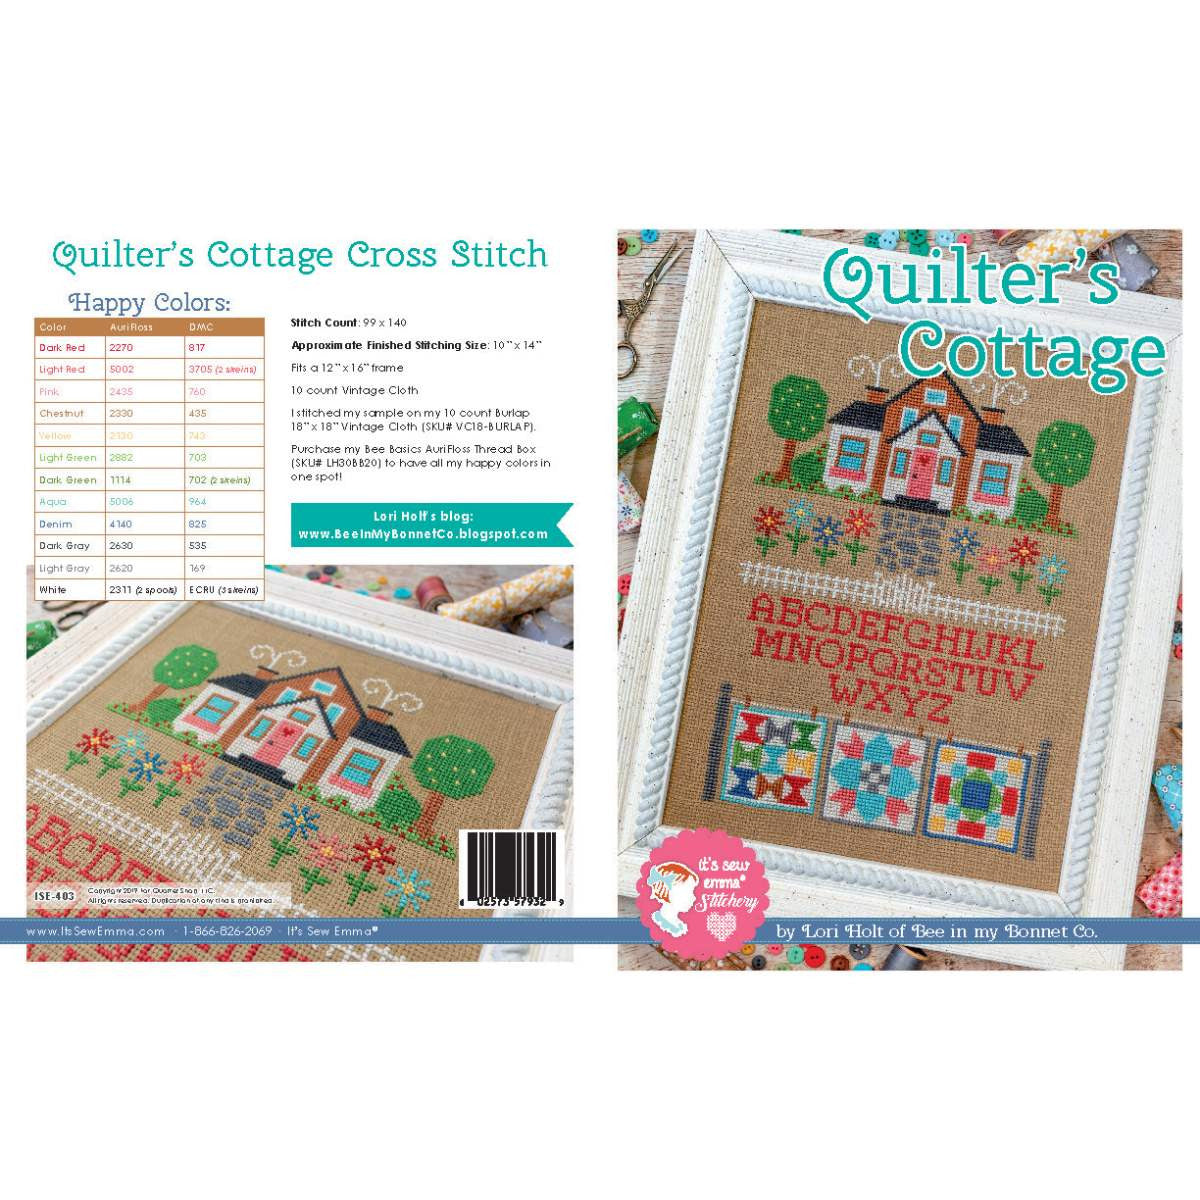 Counted Cross Stitch, QUILTER'S COTTAGE Pattern by Lori Holt